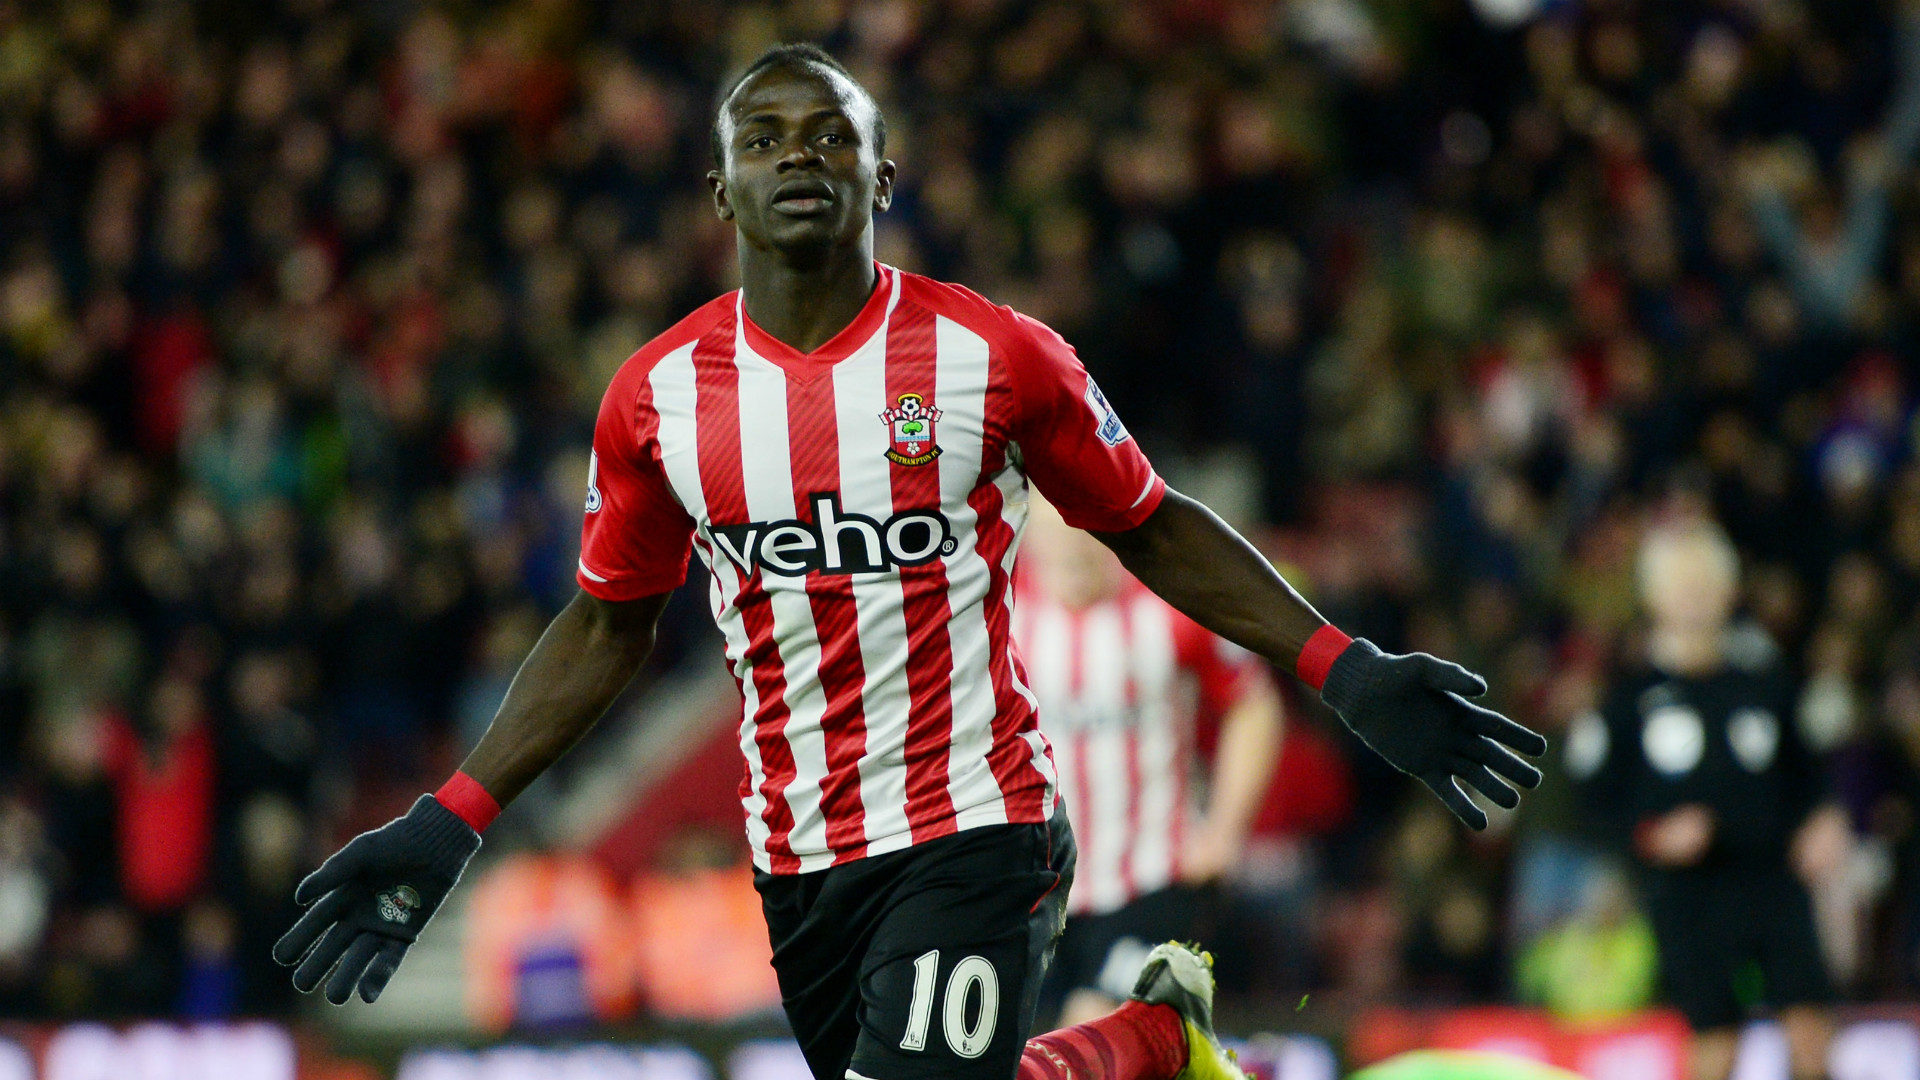 Sadio Mane - Image Source - thefootballfaithful.com